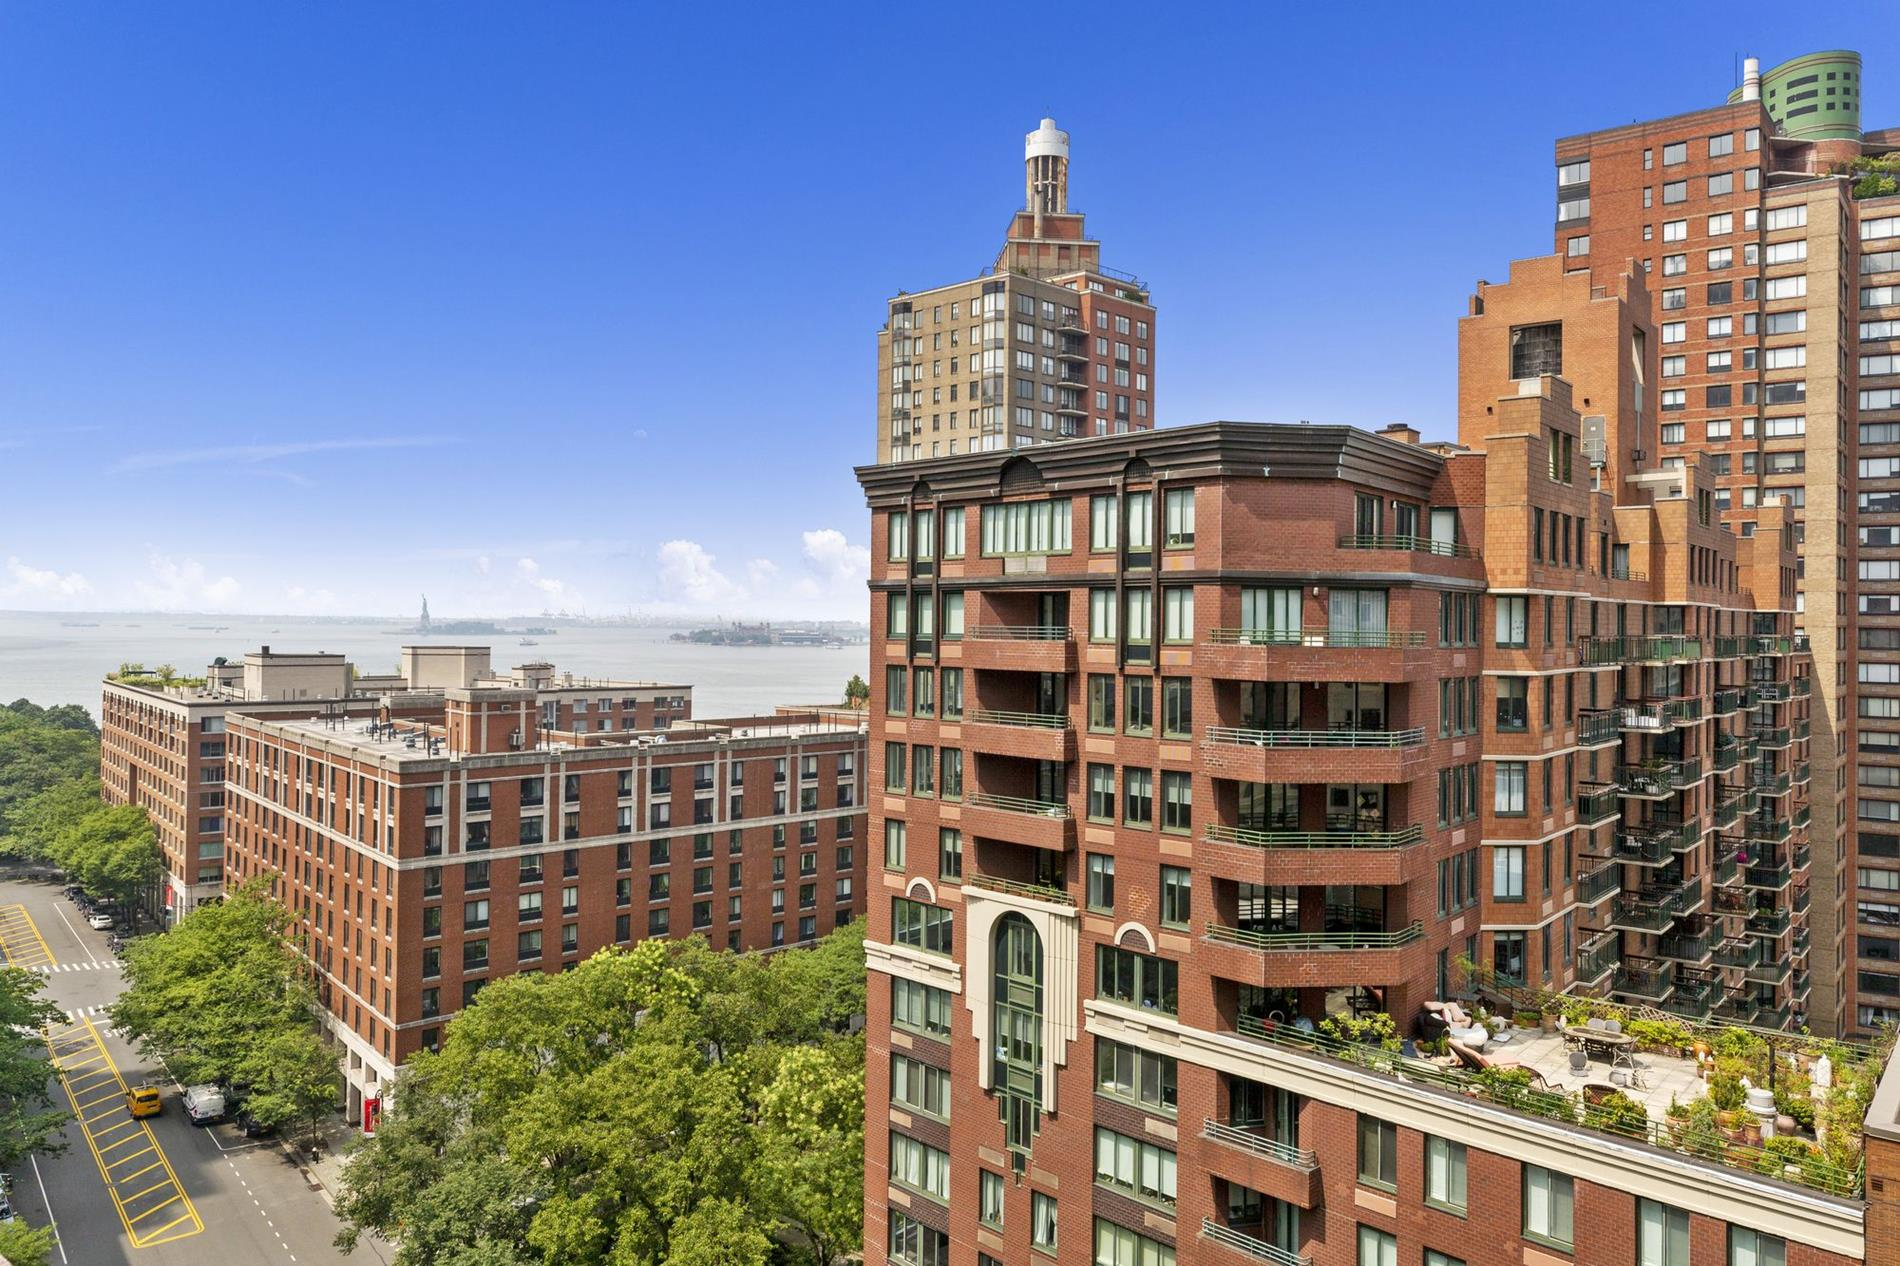 This amazing corner condo offers an outstanding opportunity to reimagine optimum downtown living. Wth incredible views, 11 windows and a prime Battery Park City address, this sun-splashed 2-bedroom, 1-bathroom home exemplifies indoor-outdoor living. An attached studio and a flexible 1,351 sq. ft. layout can also make the creation of a 3rd bedroom a reality.An expansive 1,221 sq. ft. terrace nearly doubles the size of the home and possesses protected views of the Hudson River and One World Trade Center. It is ideal for sun lounging, al fresco dining, and urban gardening, and it is perfect for enjoying magical sunsets all-year-round.Beyond a welcoming entryway adorned with a pair of coat closets, the home flows into a spacious open-concept living room, dining room, and kitchen saturated with natural light. The living room opens out onto the terrace, while the kitchen is equipped with an eat-in breakfast bar, sleek granite countertops, custom stainless steel cabinets, and a suite of high-end stainless steel appliances. Both bedrooms come with private closet space.Additional highlights include rich stone floors, a washer/dryer hookup, oversized sliding windows, and an adjacent studio with a private entrance and a full kitchen.Hudson View East is a full-service condominium located in Battery Park City. The building has 24-doorman and staff, a live-in super, a tranquil courtyard with grilling stations, common laundry on every floor, a bicycle room, and private storage. It is close to many local schools, and it is moments from the Hudson River Esplanade, Brookfield Place, Westfield Mall, Oculus Center, The Battery, One World Trade Center, and the Financial District. Nearby subway lines include the 1/2/3/4/5/R/W/E/J/Z. Pets are welcome.14AF has been virtually staged